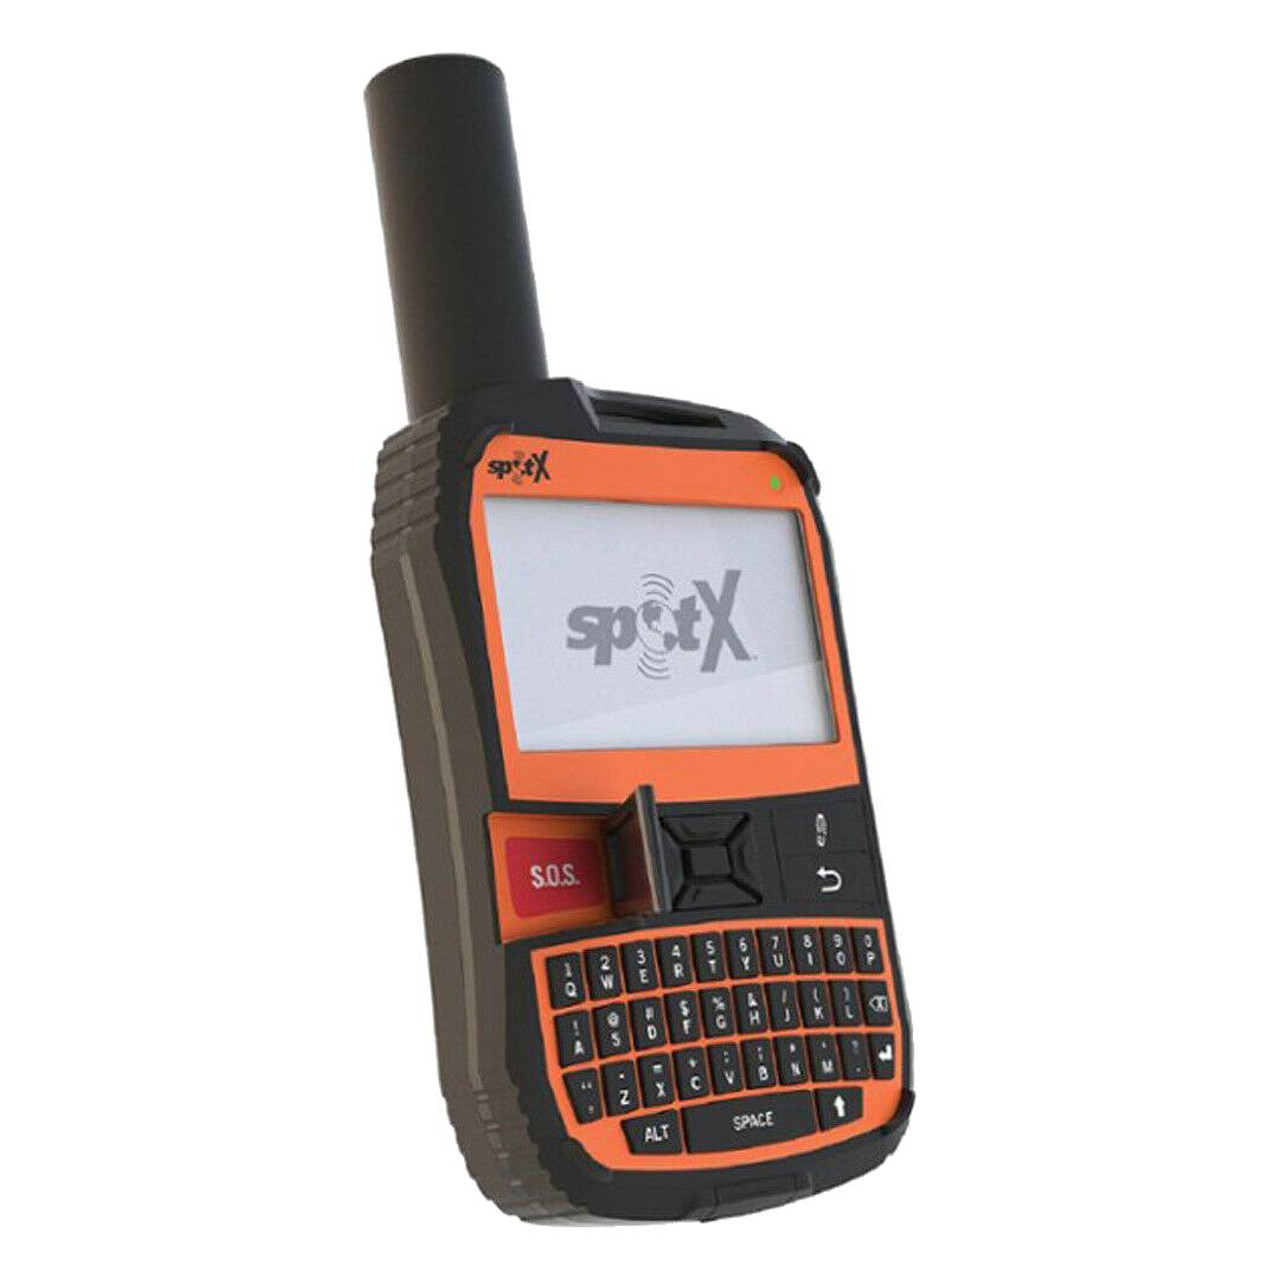 Pursue YOUR PASSION - EMBRACE THE JOURNEY...  SPOT X provides 2-way satellite messaging when you're off the grid or beyond reliable cellular coverage. Connect SPOT X to your smart phone via Bluetooth wireless technology.